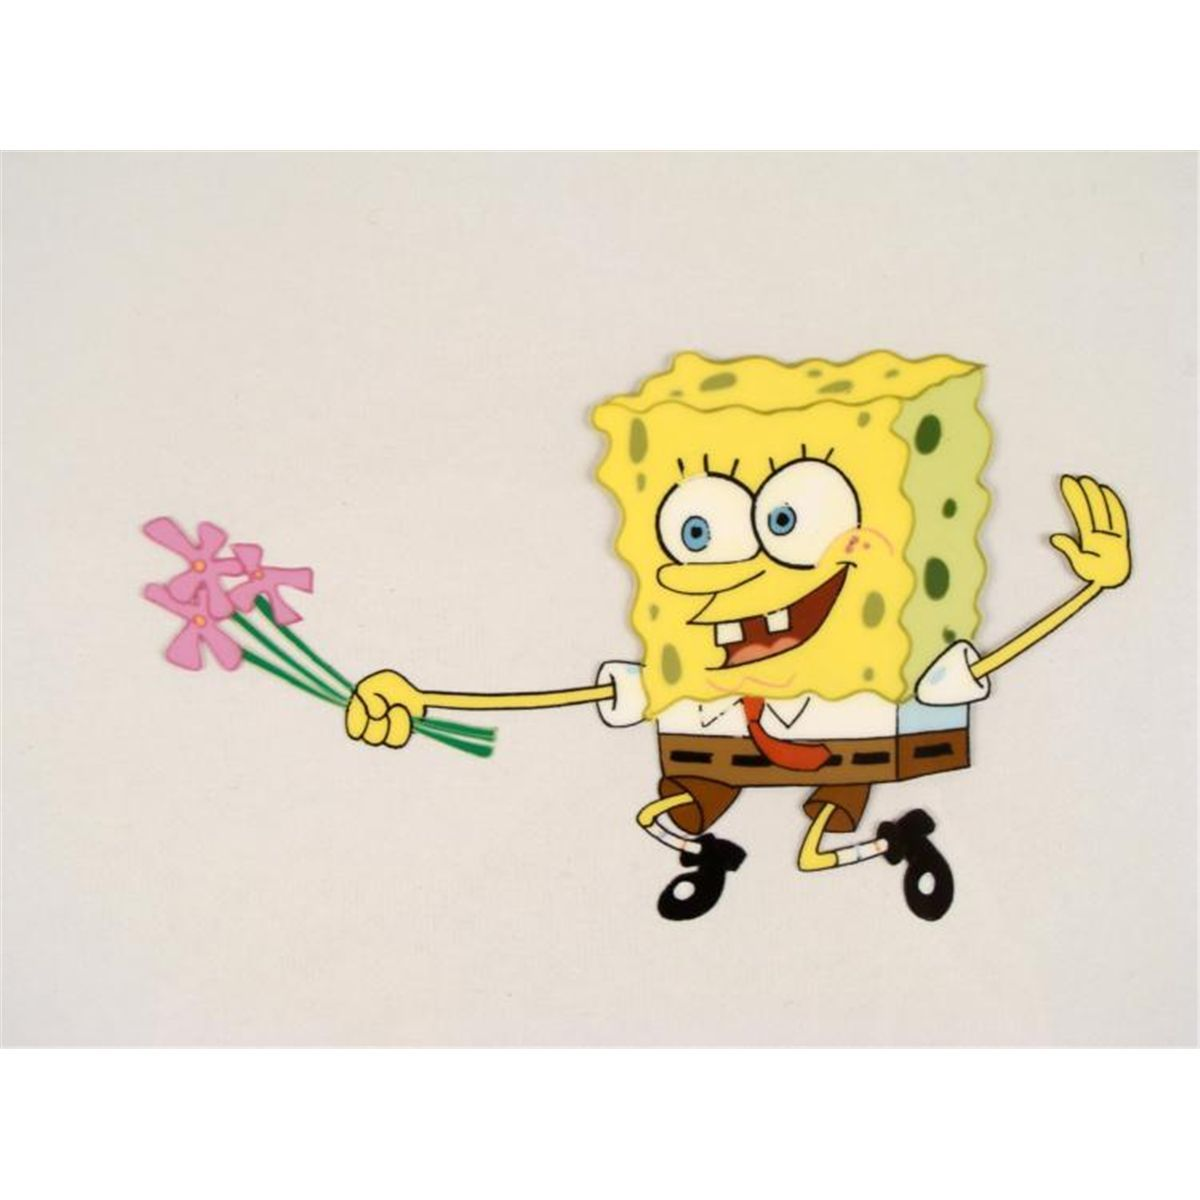 Slapping Flowers SpongeBob Original Animation Art Cel